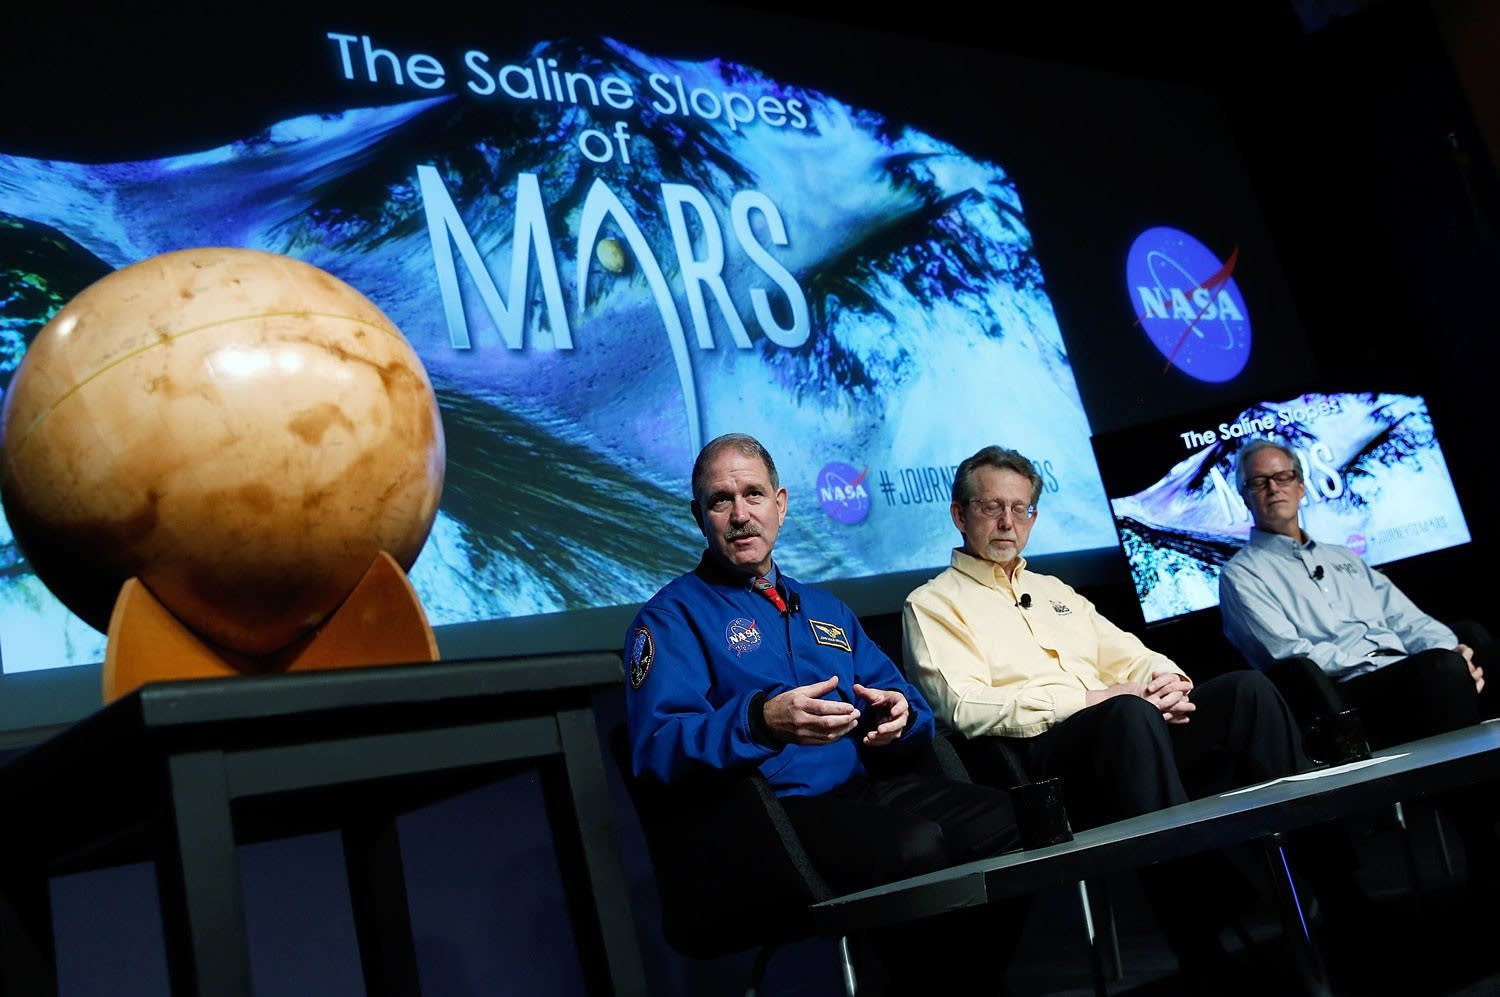 NASA Announces Major Scientific Finding On Mars